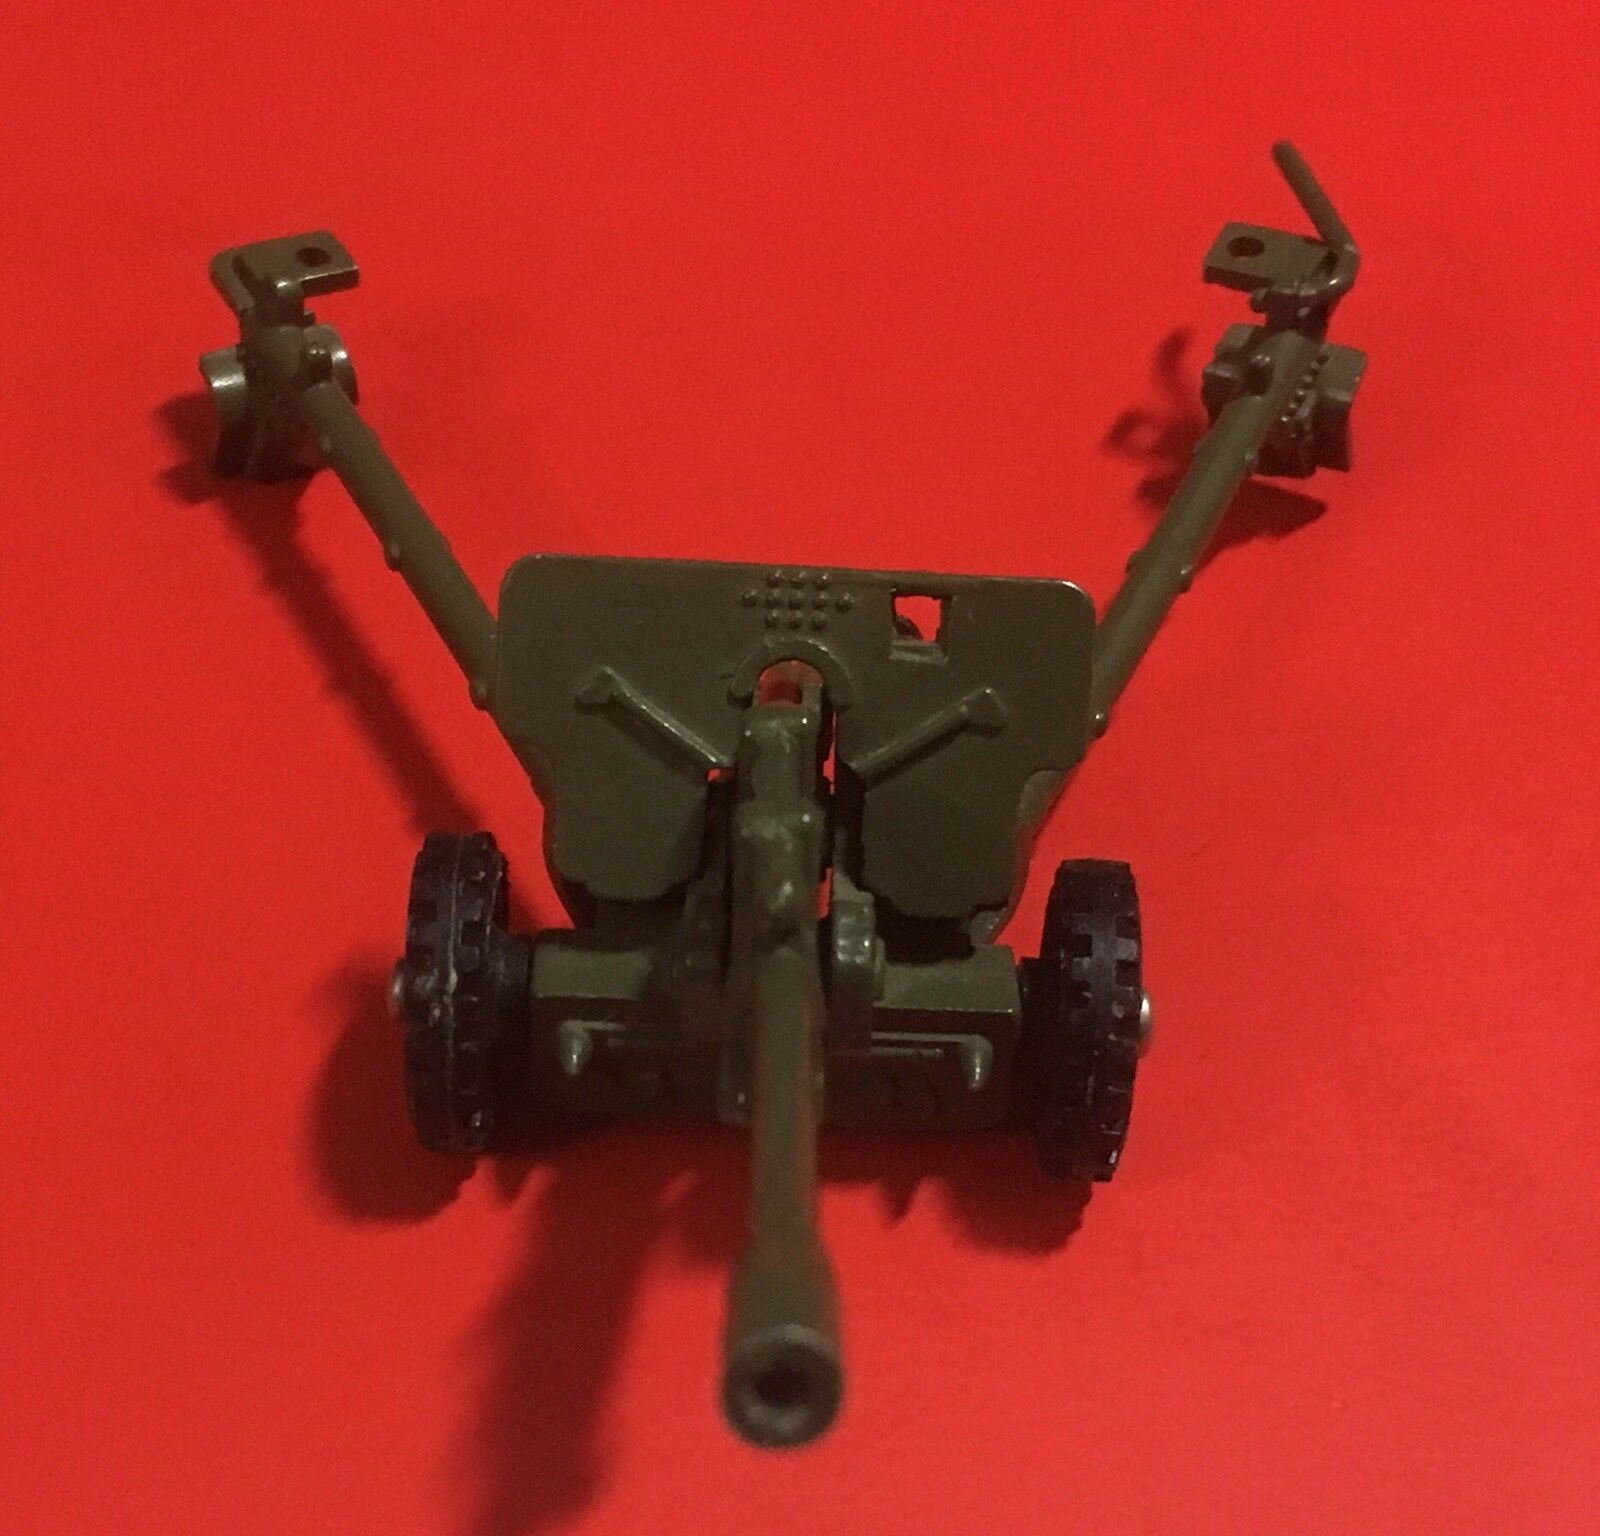 Vintage USSR 1 43 Artillery Gun Anti-Tank Military Metal Toy NIB